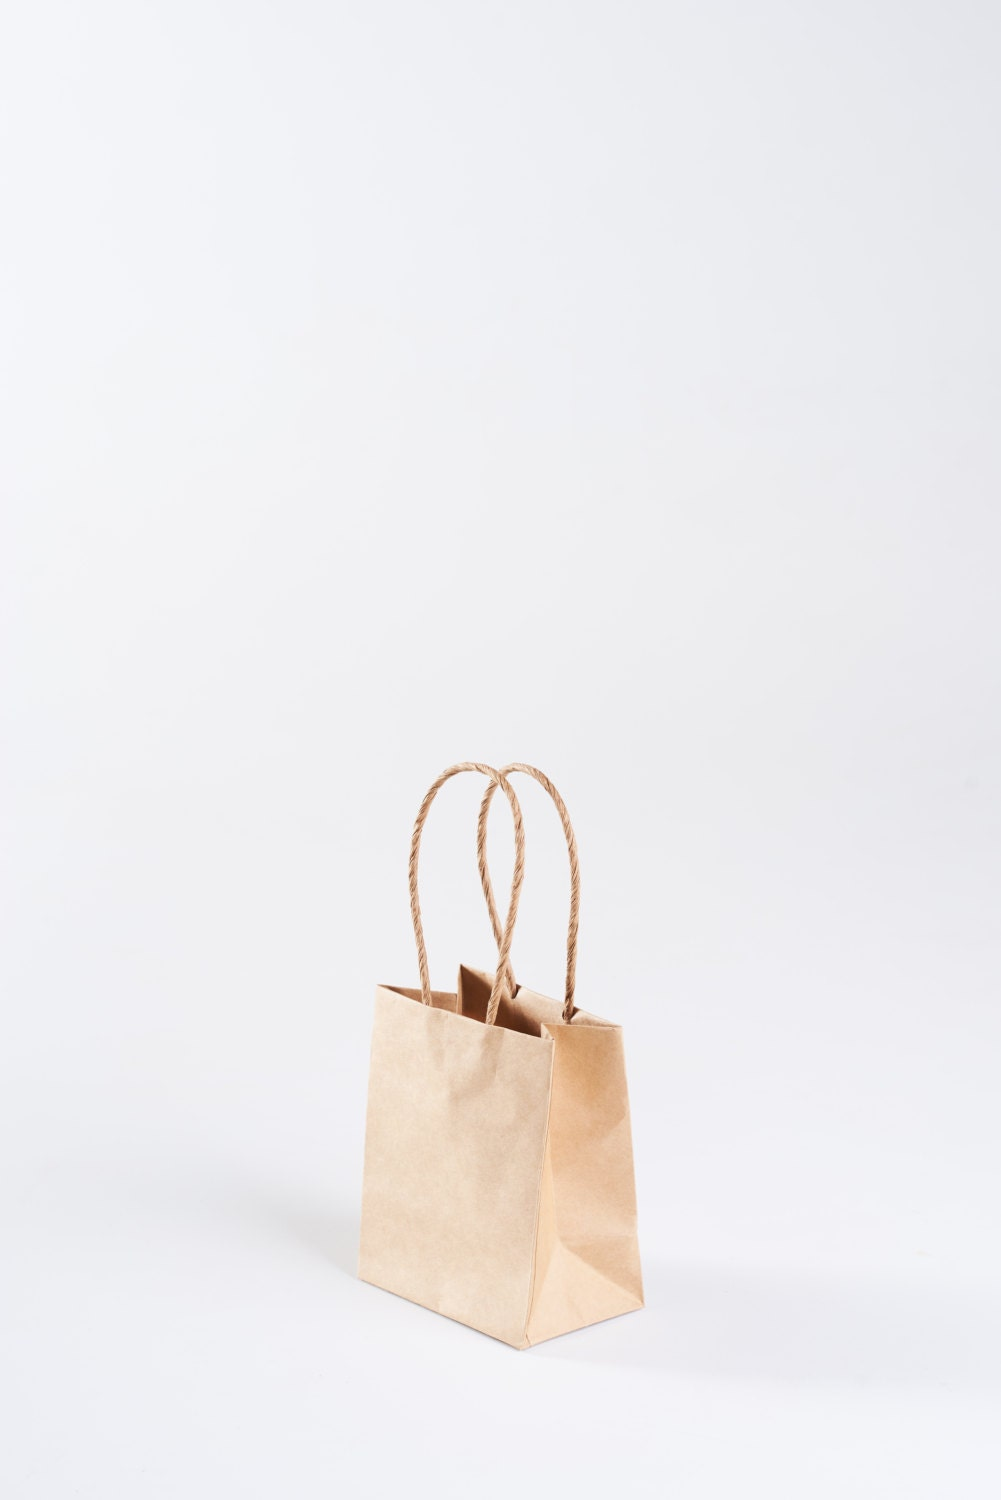 50 small kraft paper gift bags with handles mini gift bags description 50 mini kraft paper bags jeuxipadfo Choice Image